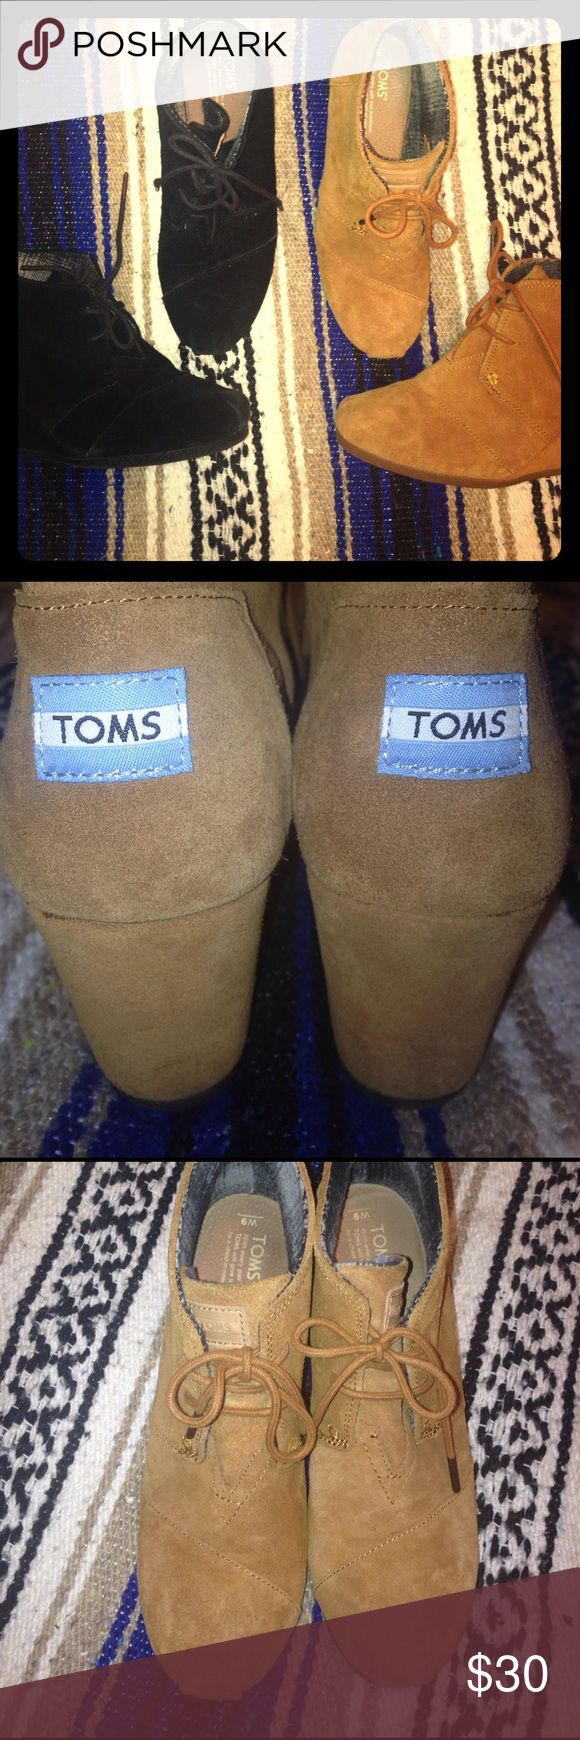 Toms wedge booties I have a black pair and a pair in camel. They are a suede-like material and in great condition, the brown ones only being worn twice. They are so comfy and definitely can be worn for long periods of time! TOMS Shoes Ankle Boots & Booties